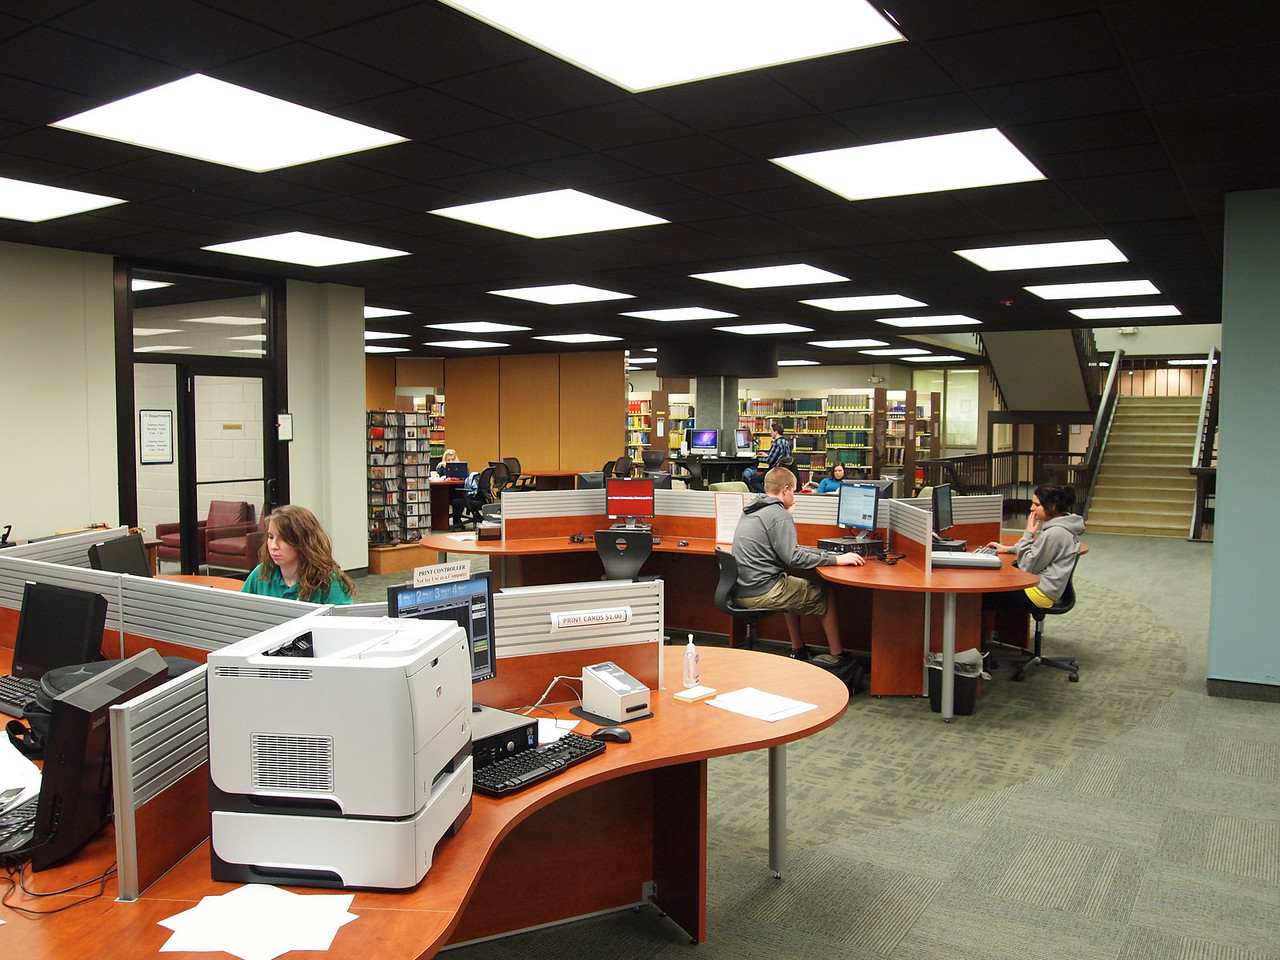 the new desks open up a lot of room